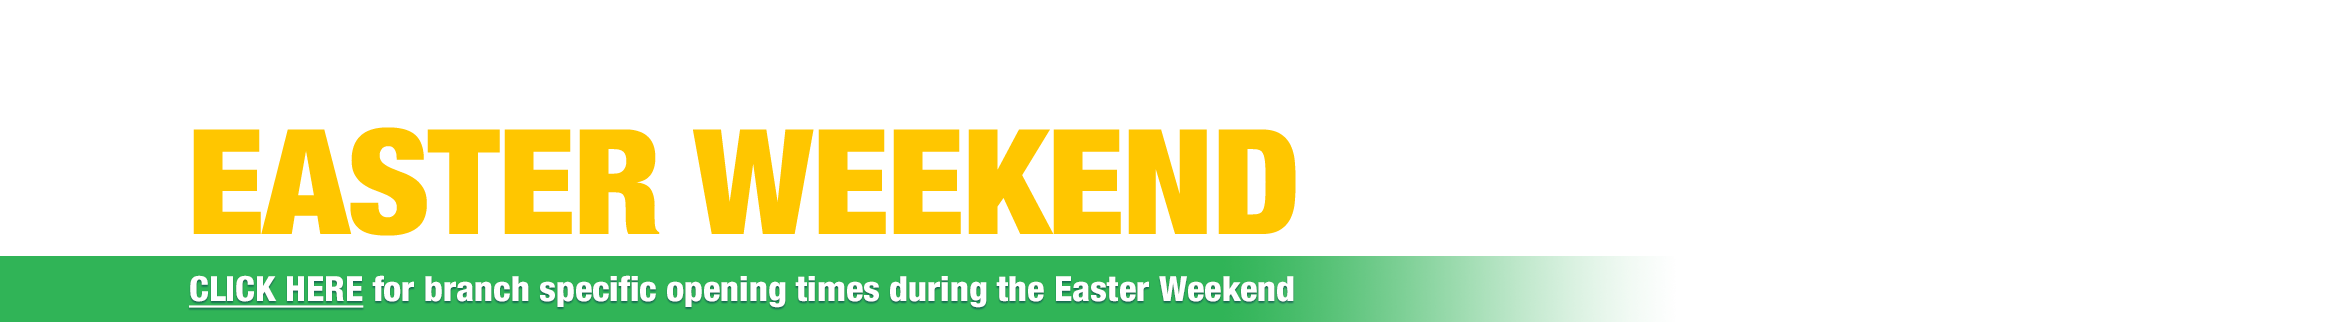 Easter Weekend Opening